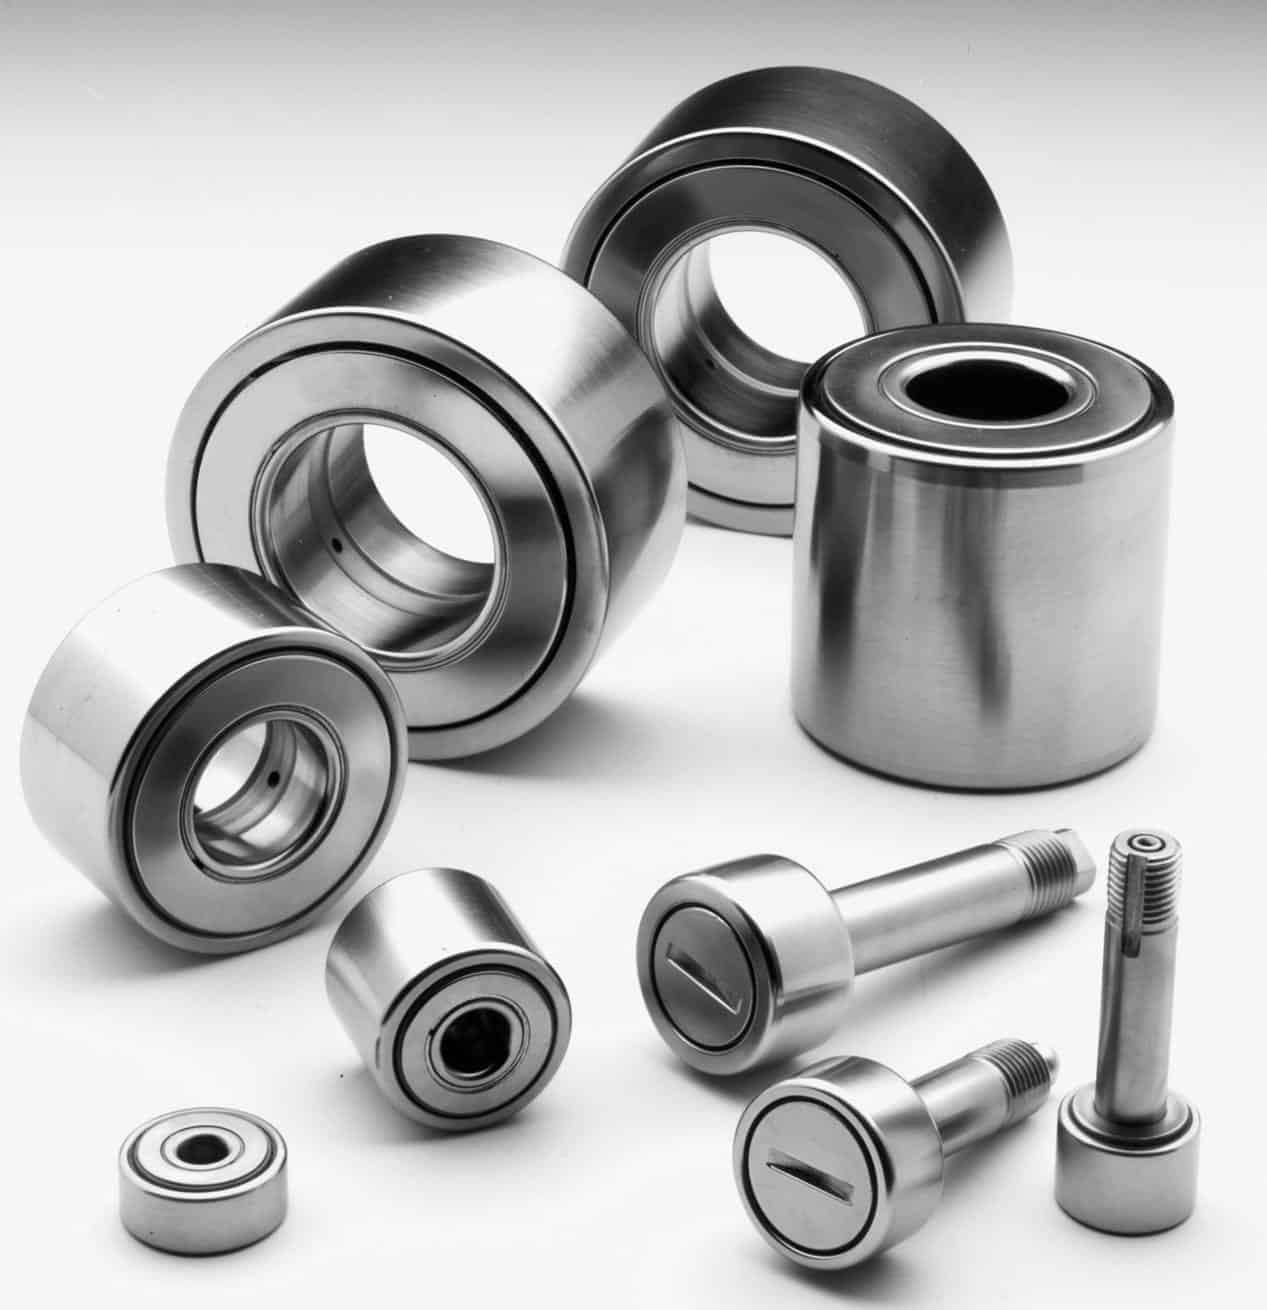 Needle Roller Bearings : Aerospace needle roller bearing unmanned systems technology